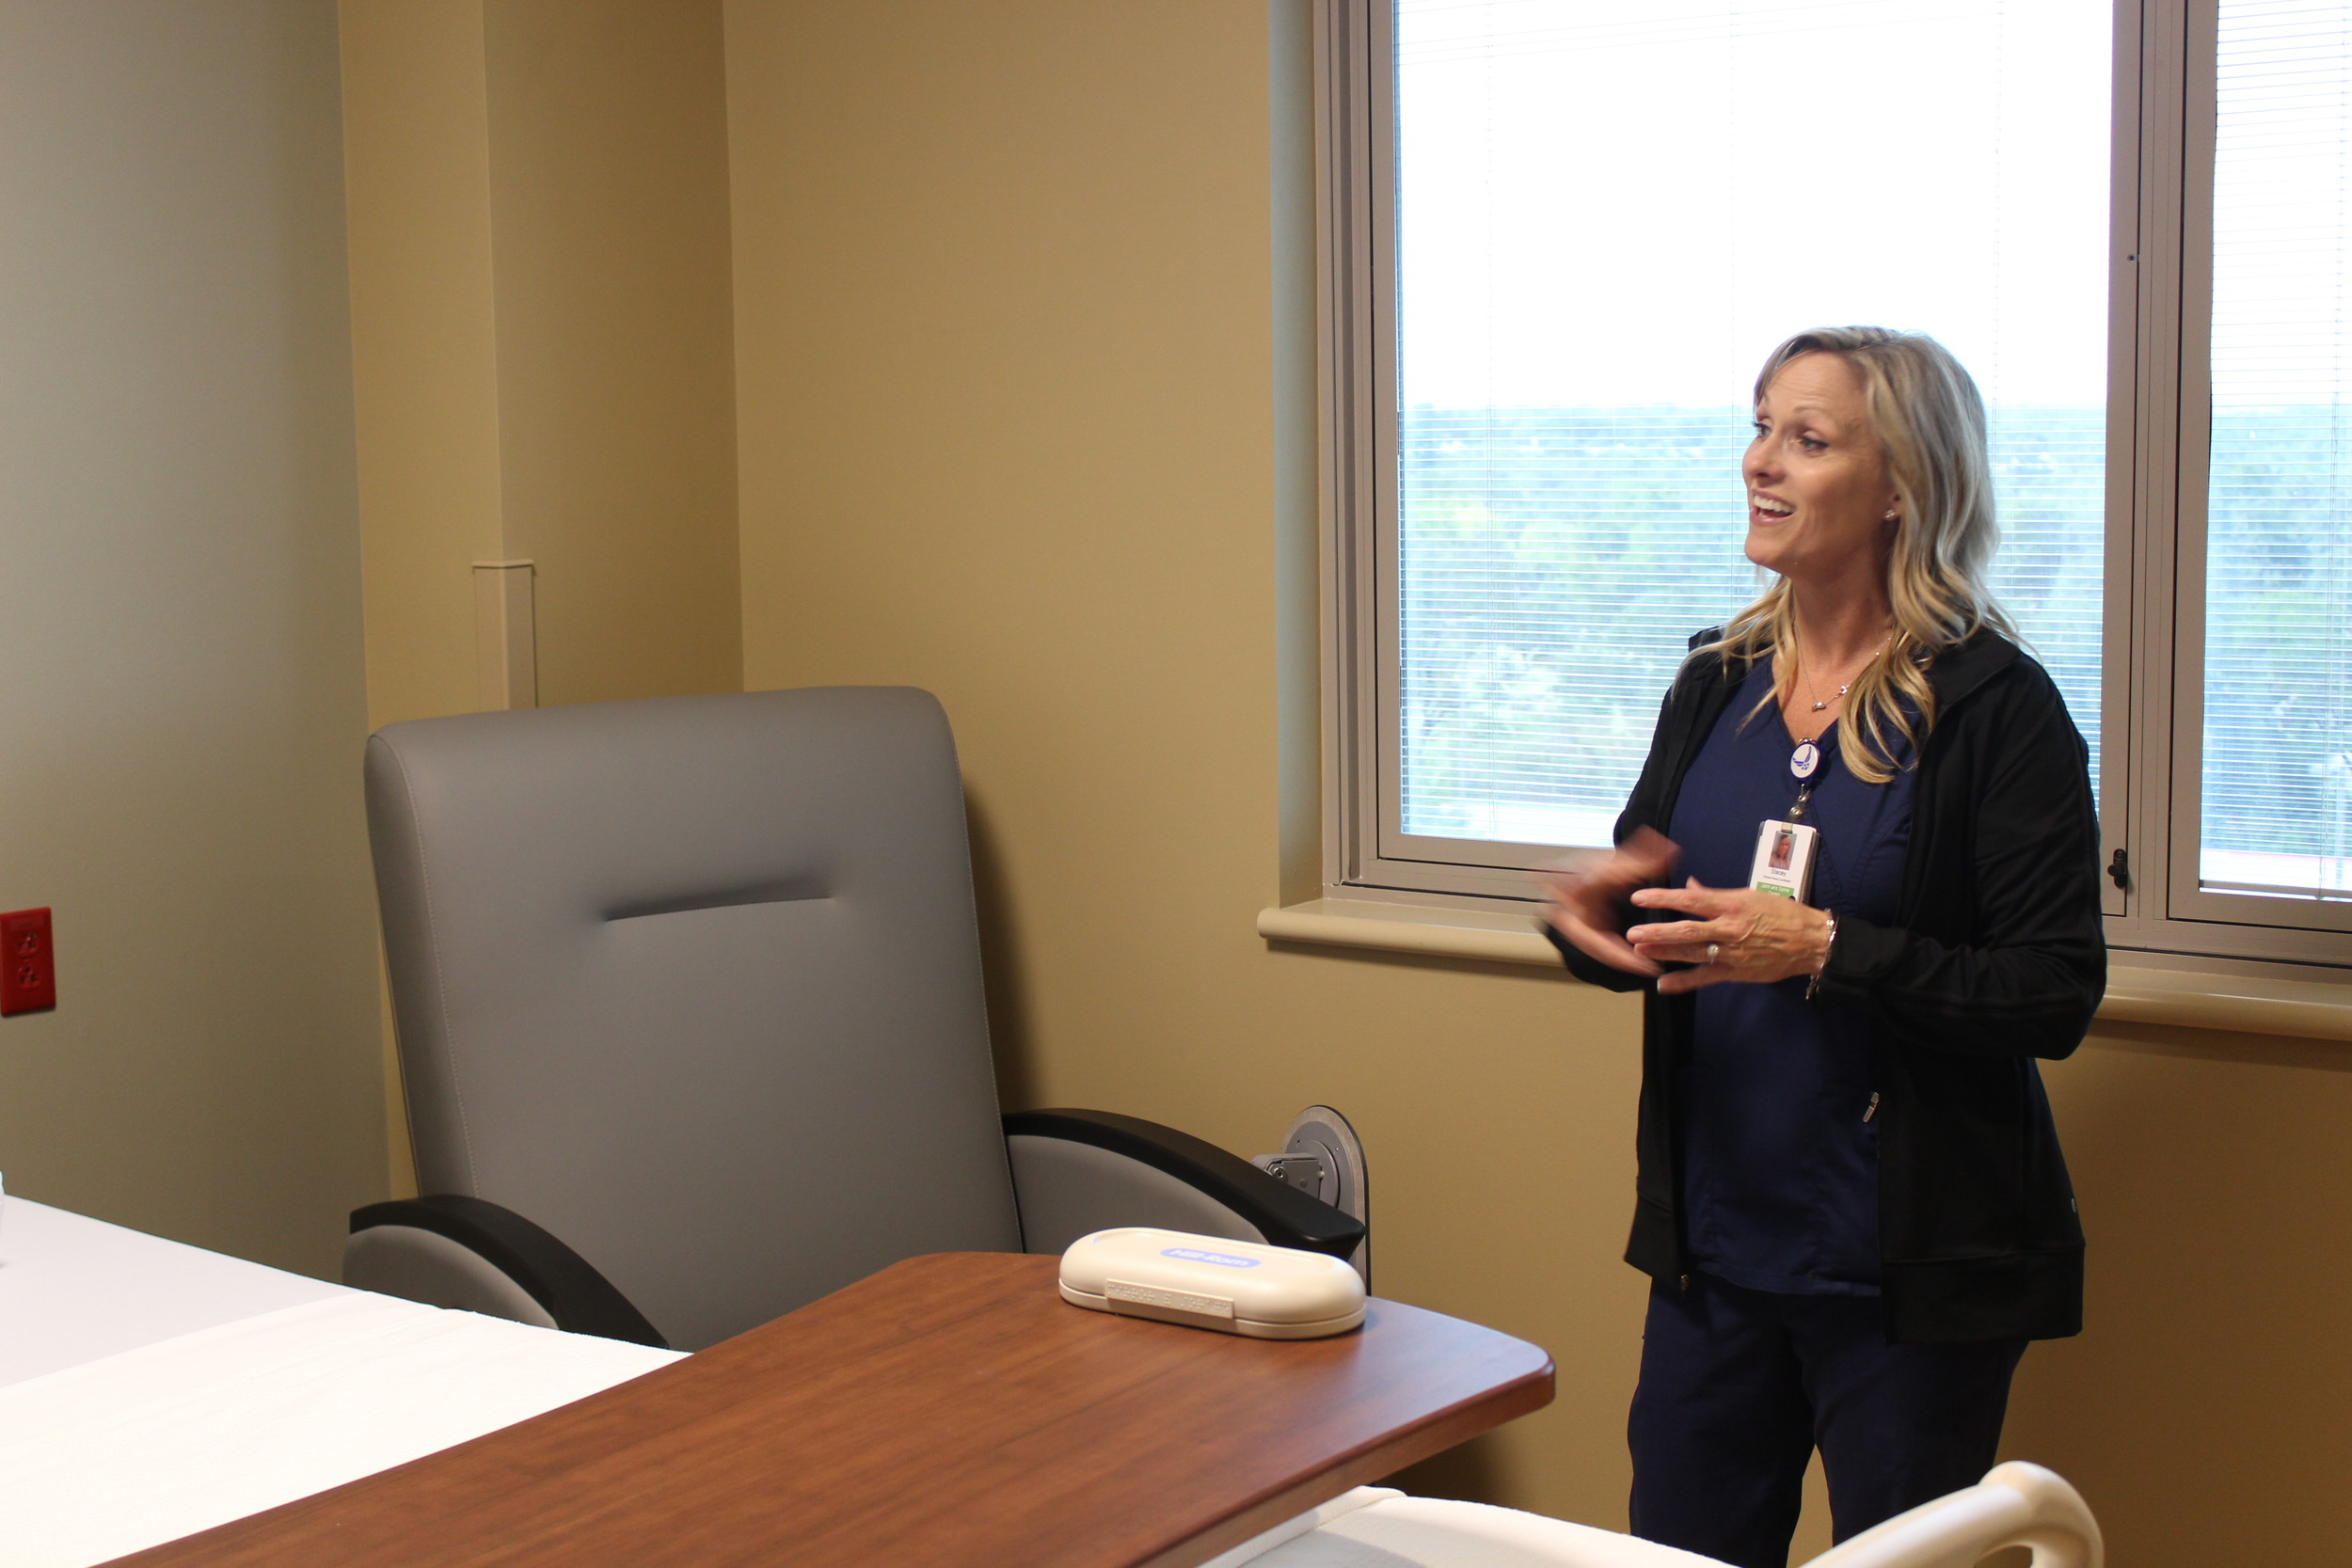 Stacey Williams, orthopedics coordinator, showcases how the Joint and Spine Center's private rooms cater to families.